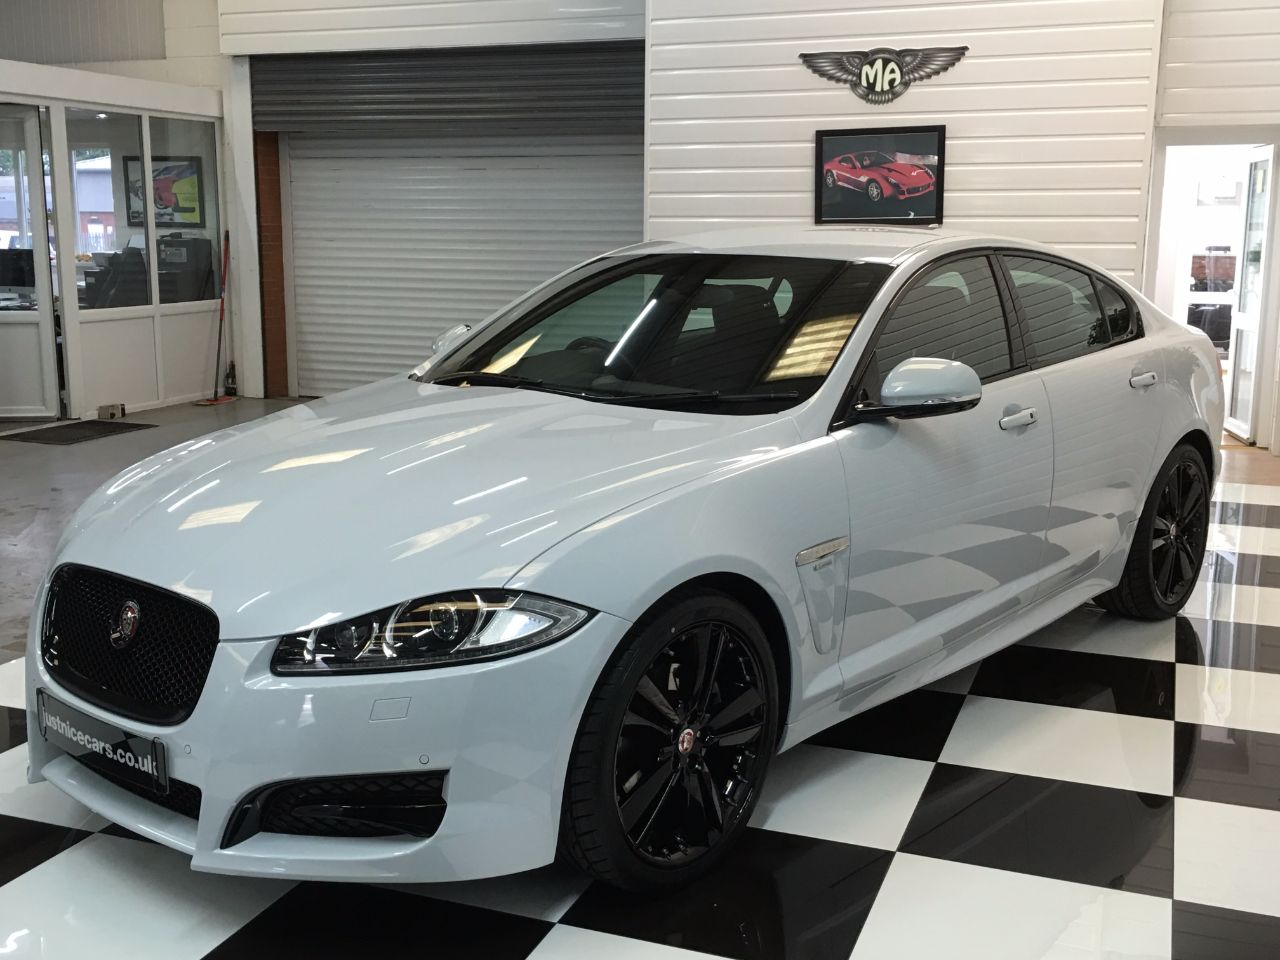 used jaguar xf v6 r sport black le 4dr auto 240bhp big spec for sale in scunthorpe. Black Bedroom Furniture Sets. Home Design Ideas